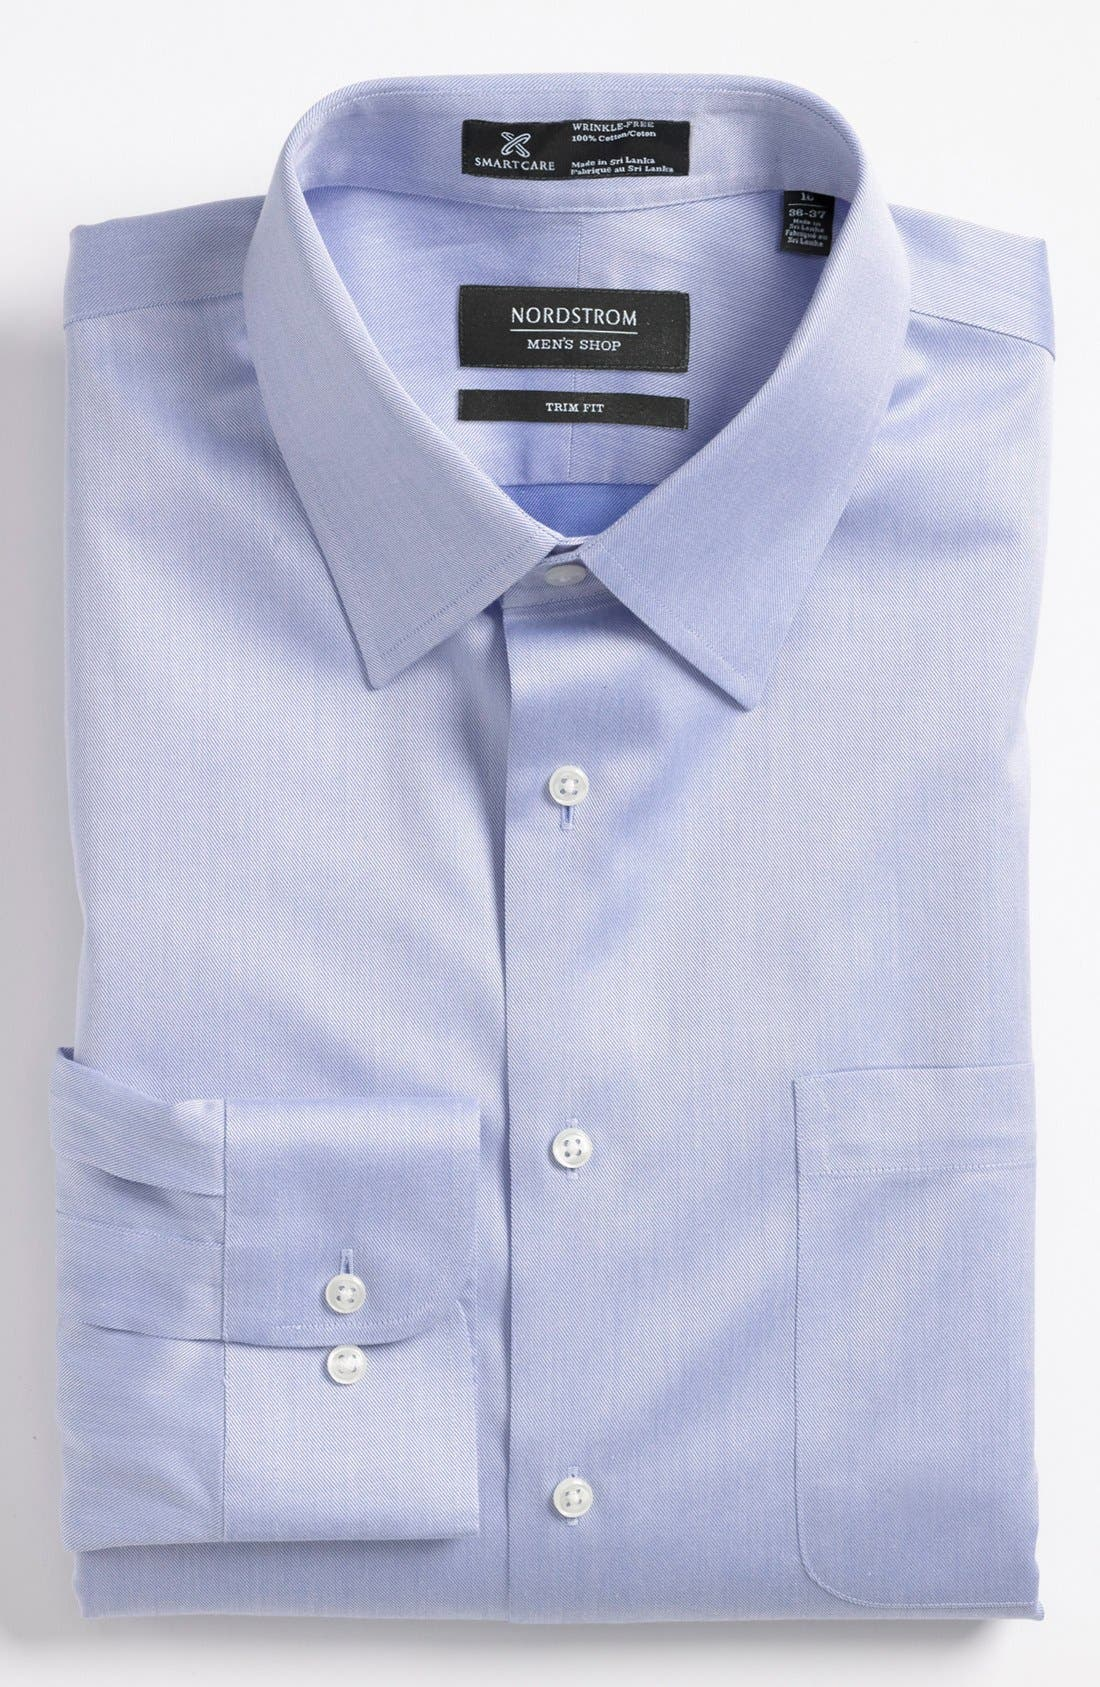 Alternate Image 1 Selected - Nordstrom Men's Shop Smartcare™ Trim Fit Twill Dress Shirt